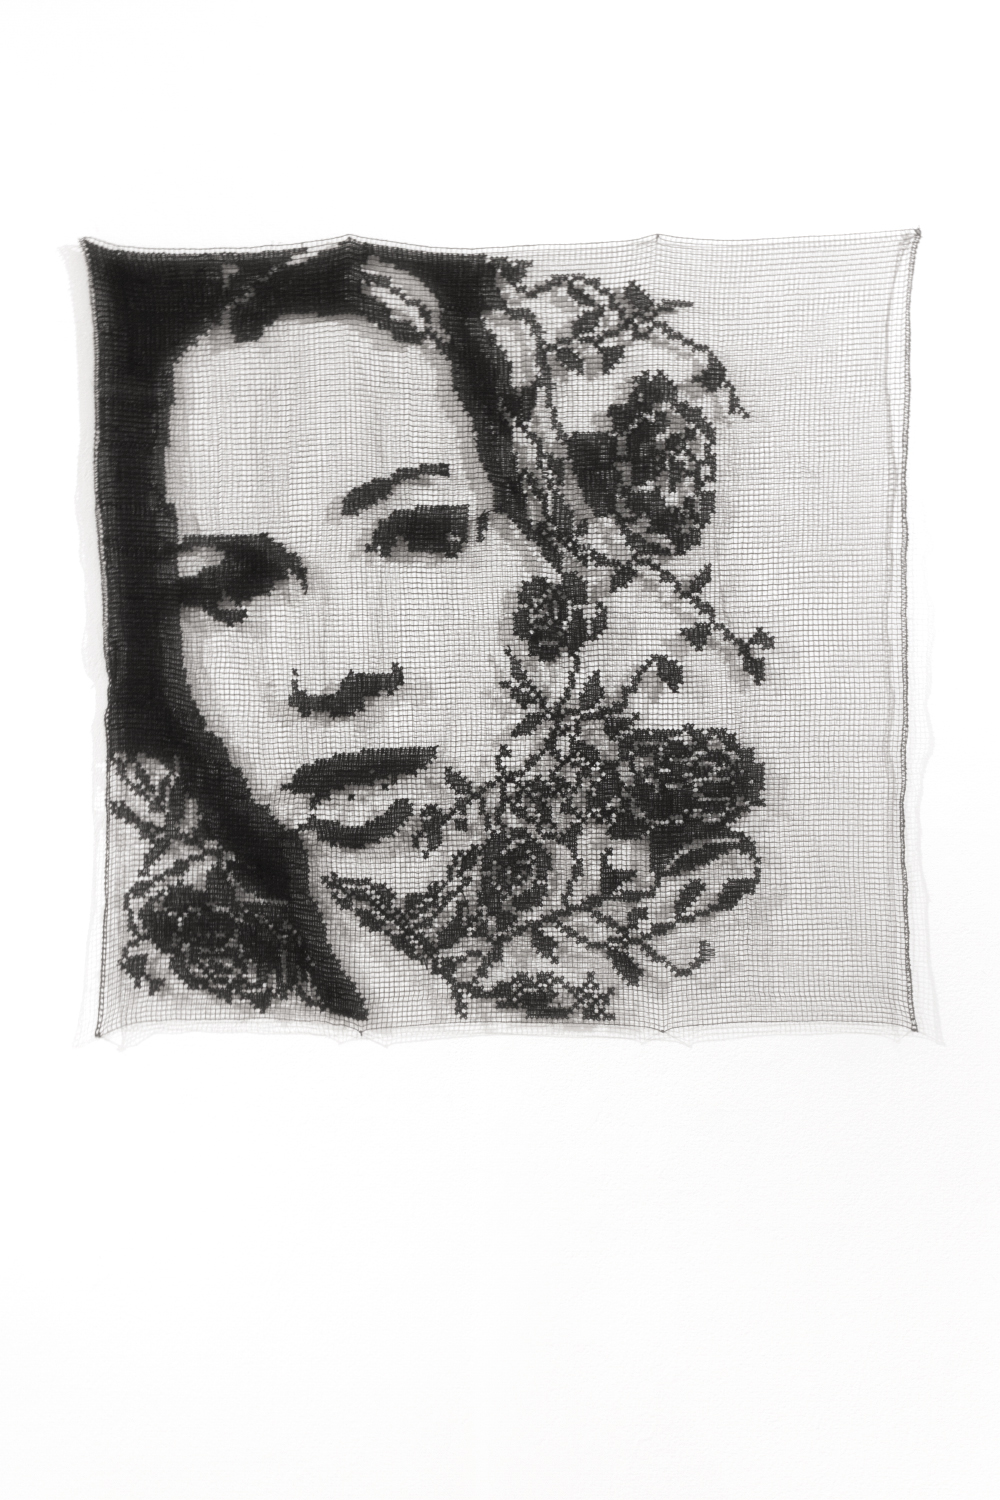 """Lace portrait of the """"villain"""" of season 22 of the Bachelor in black and white surrounded by lace roses"""